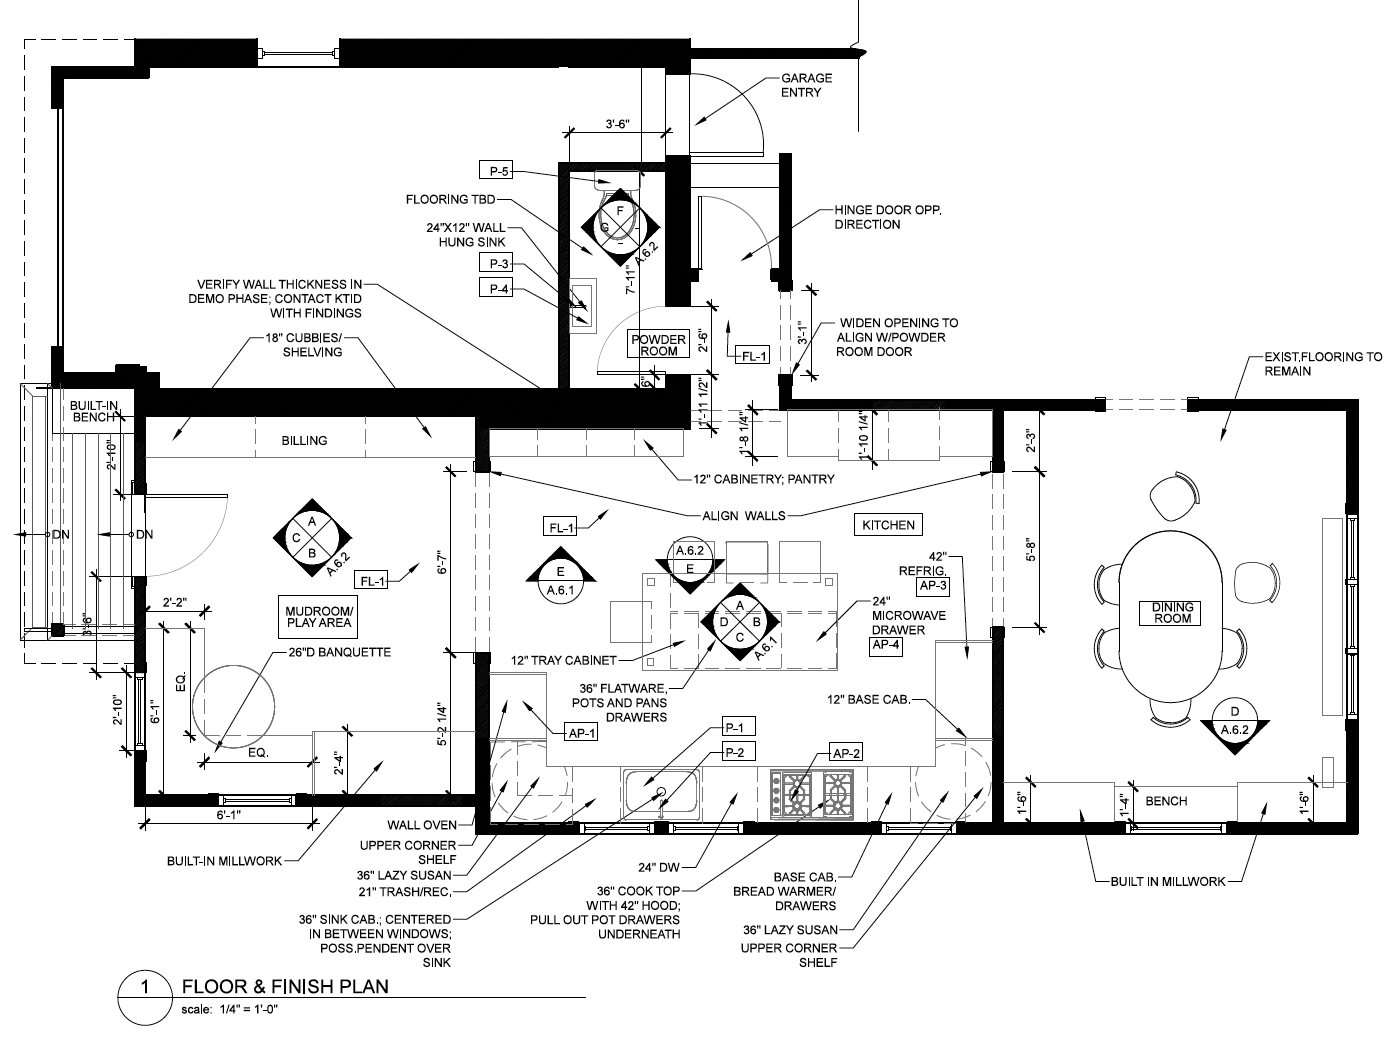 The final floor plan opens up the house from front to back, allowing natural light and views across the whole space.